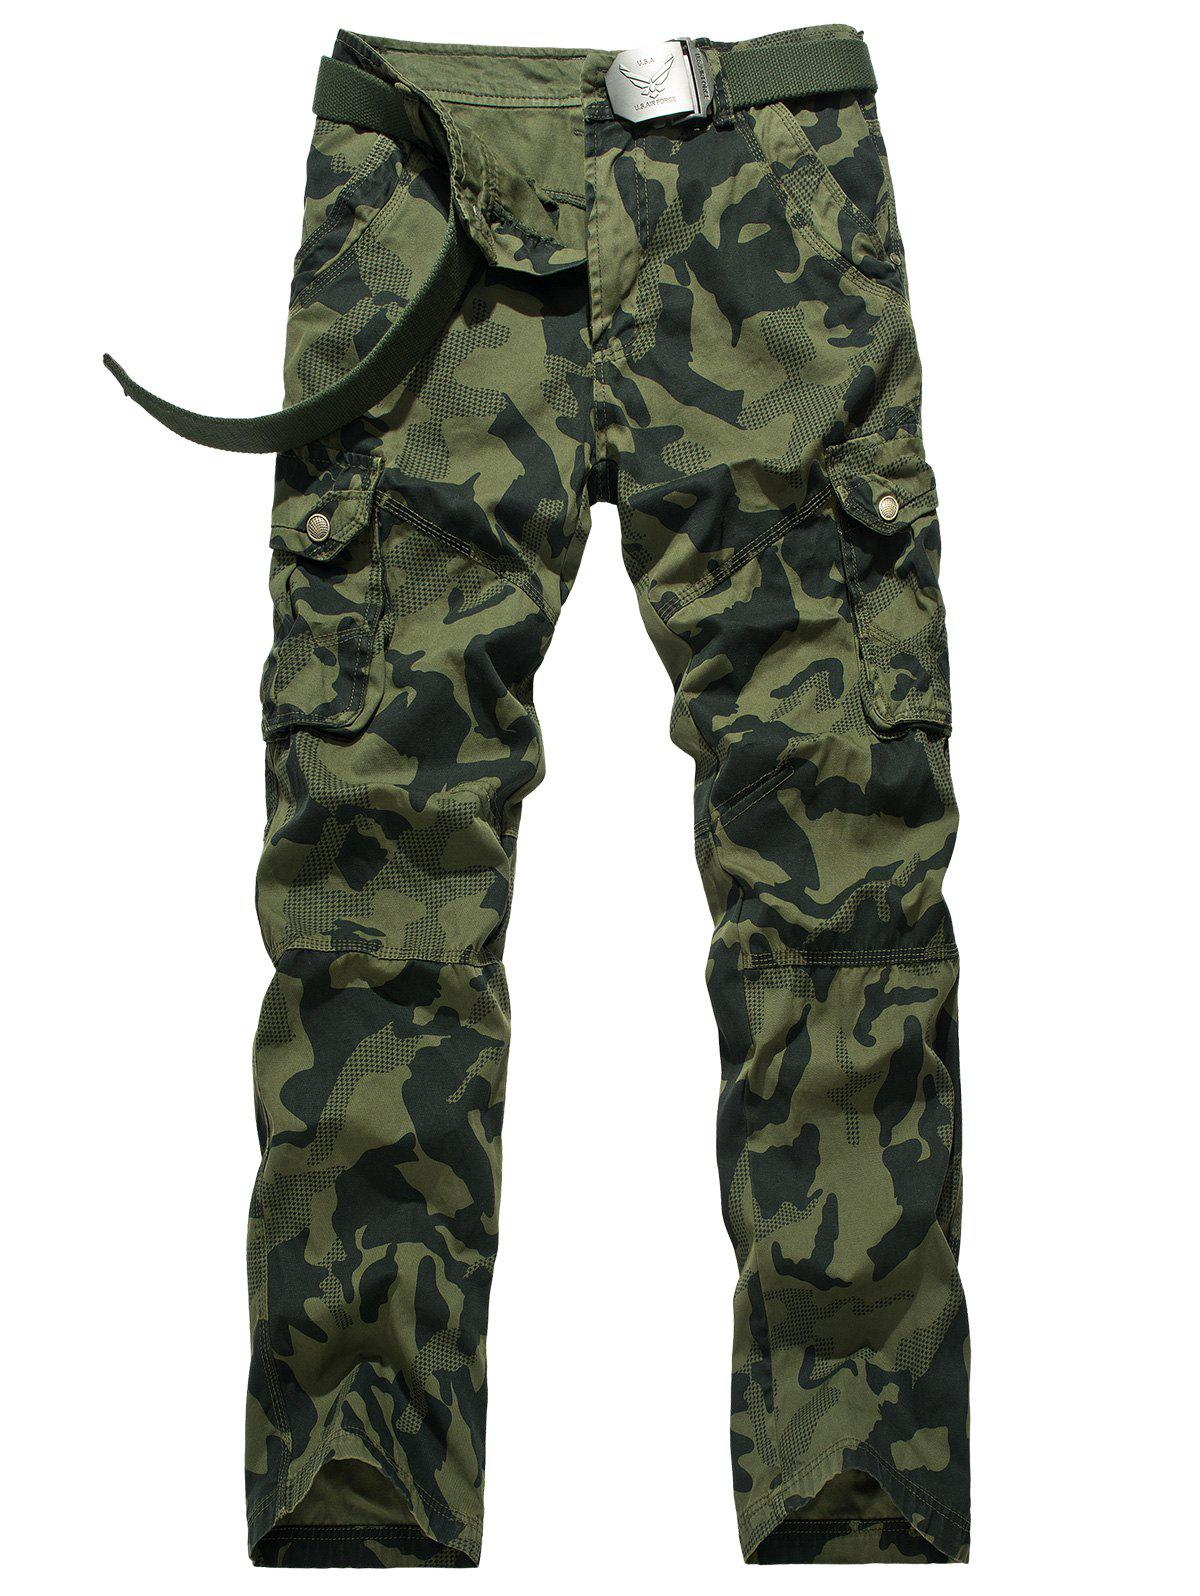 Swallow Gird Camouflage Cargo Pants - ARMY GREEN 40